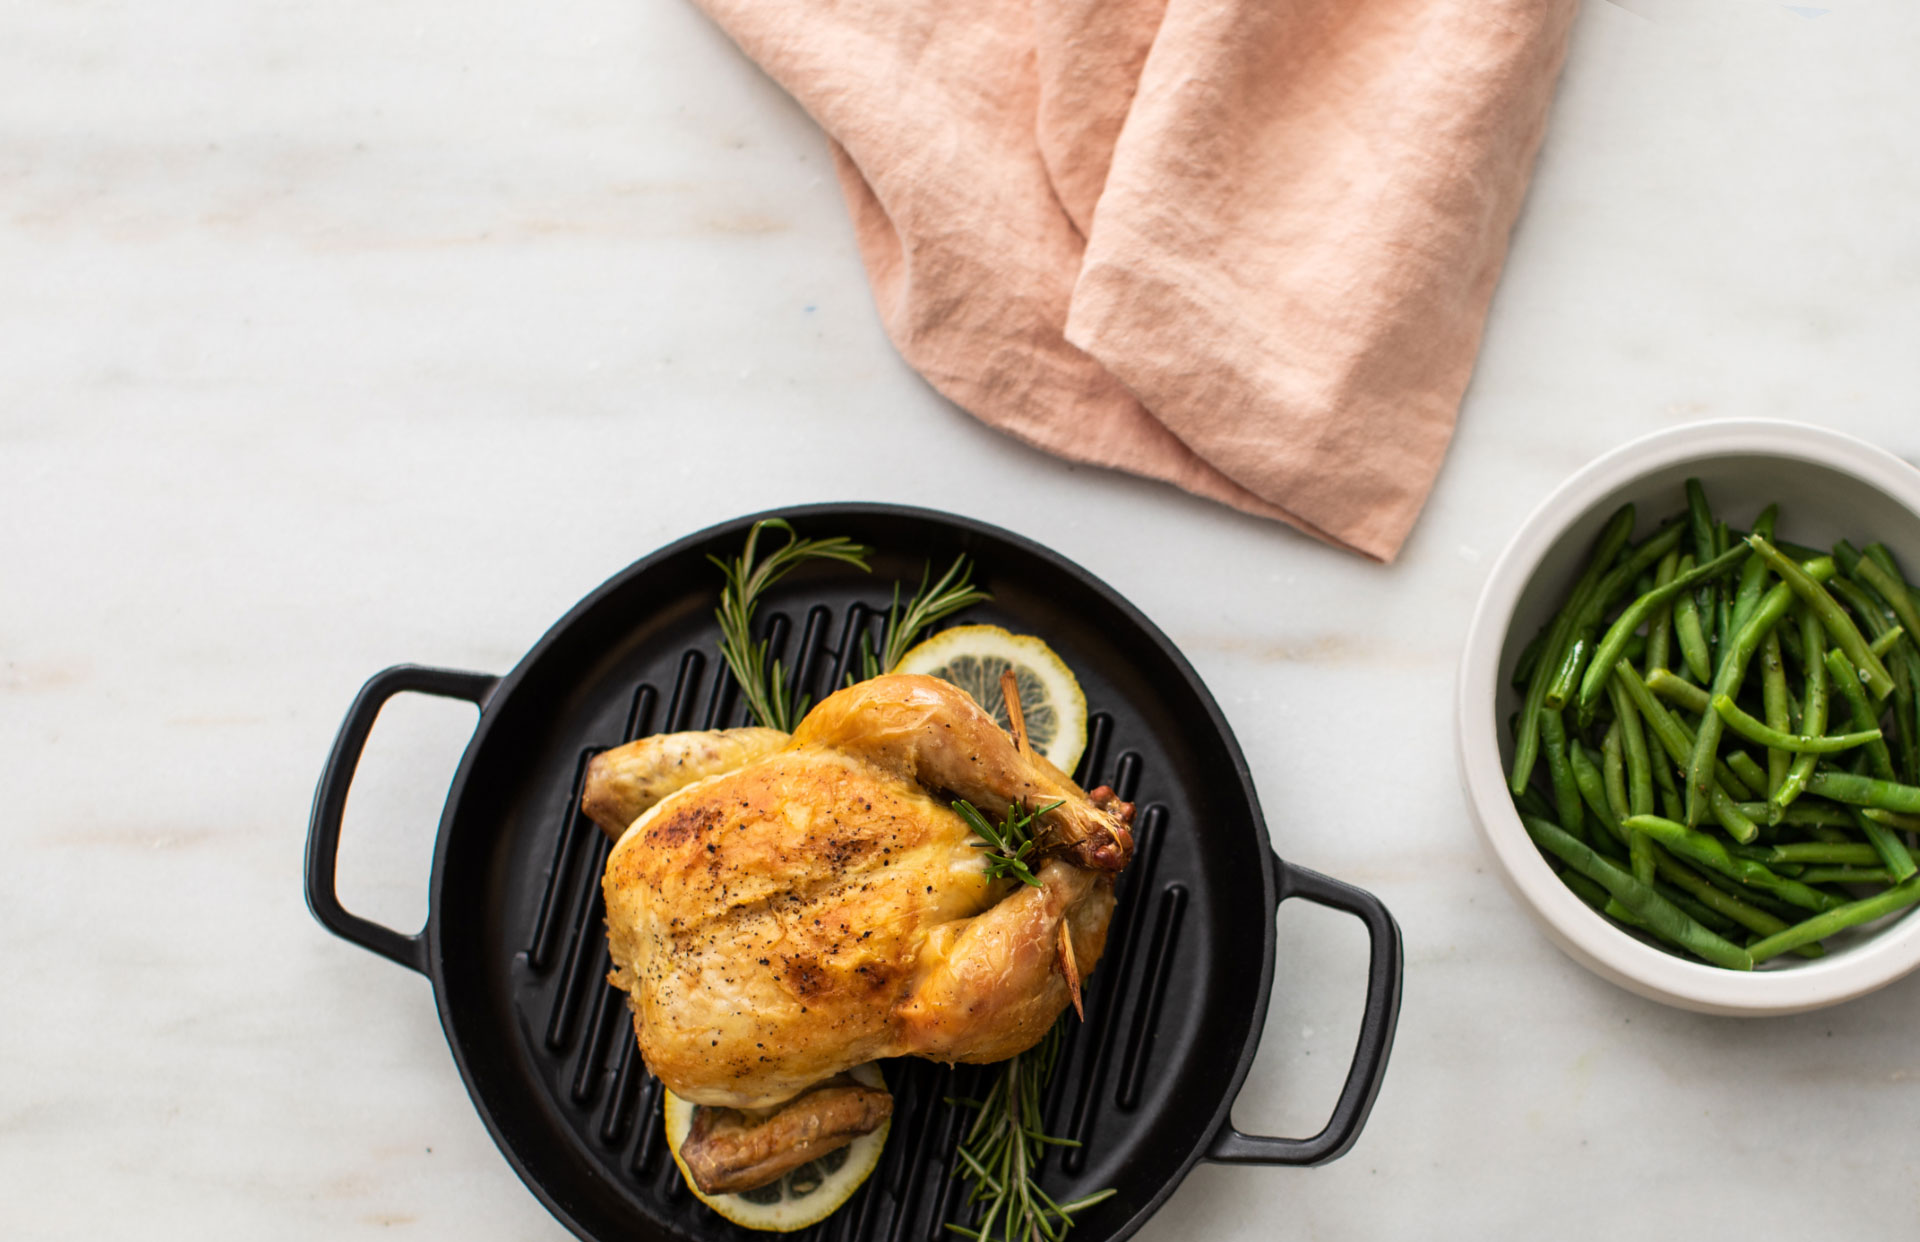 Roasted Cornish Game hen with Rosemary and Lemon